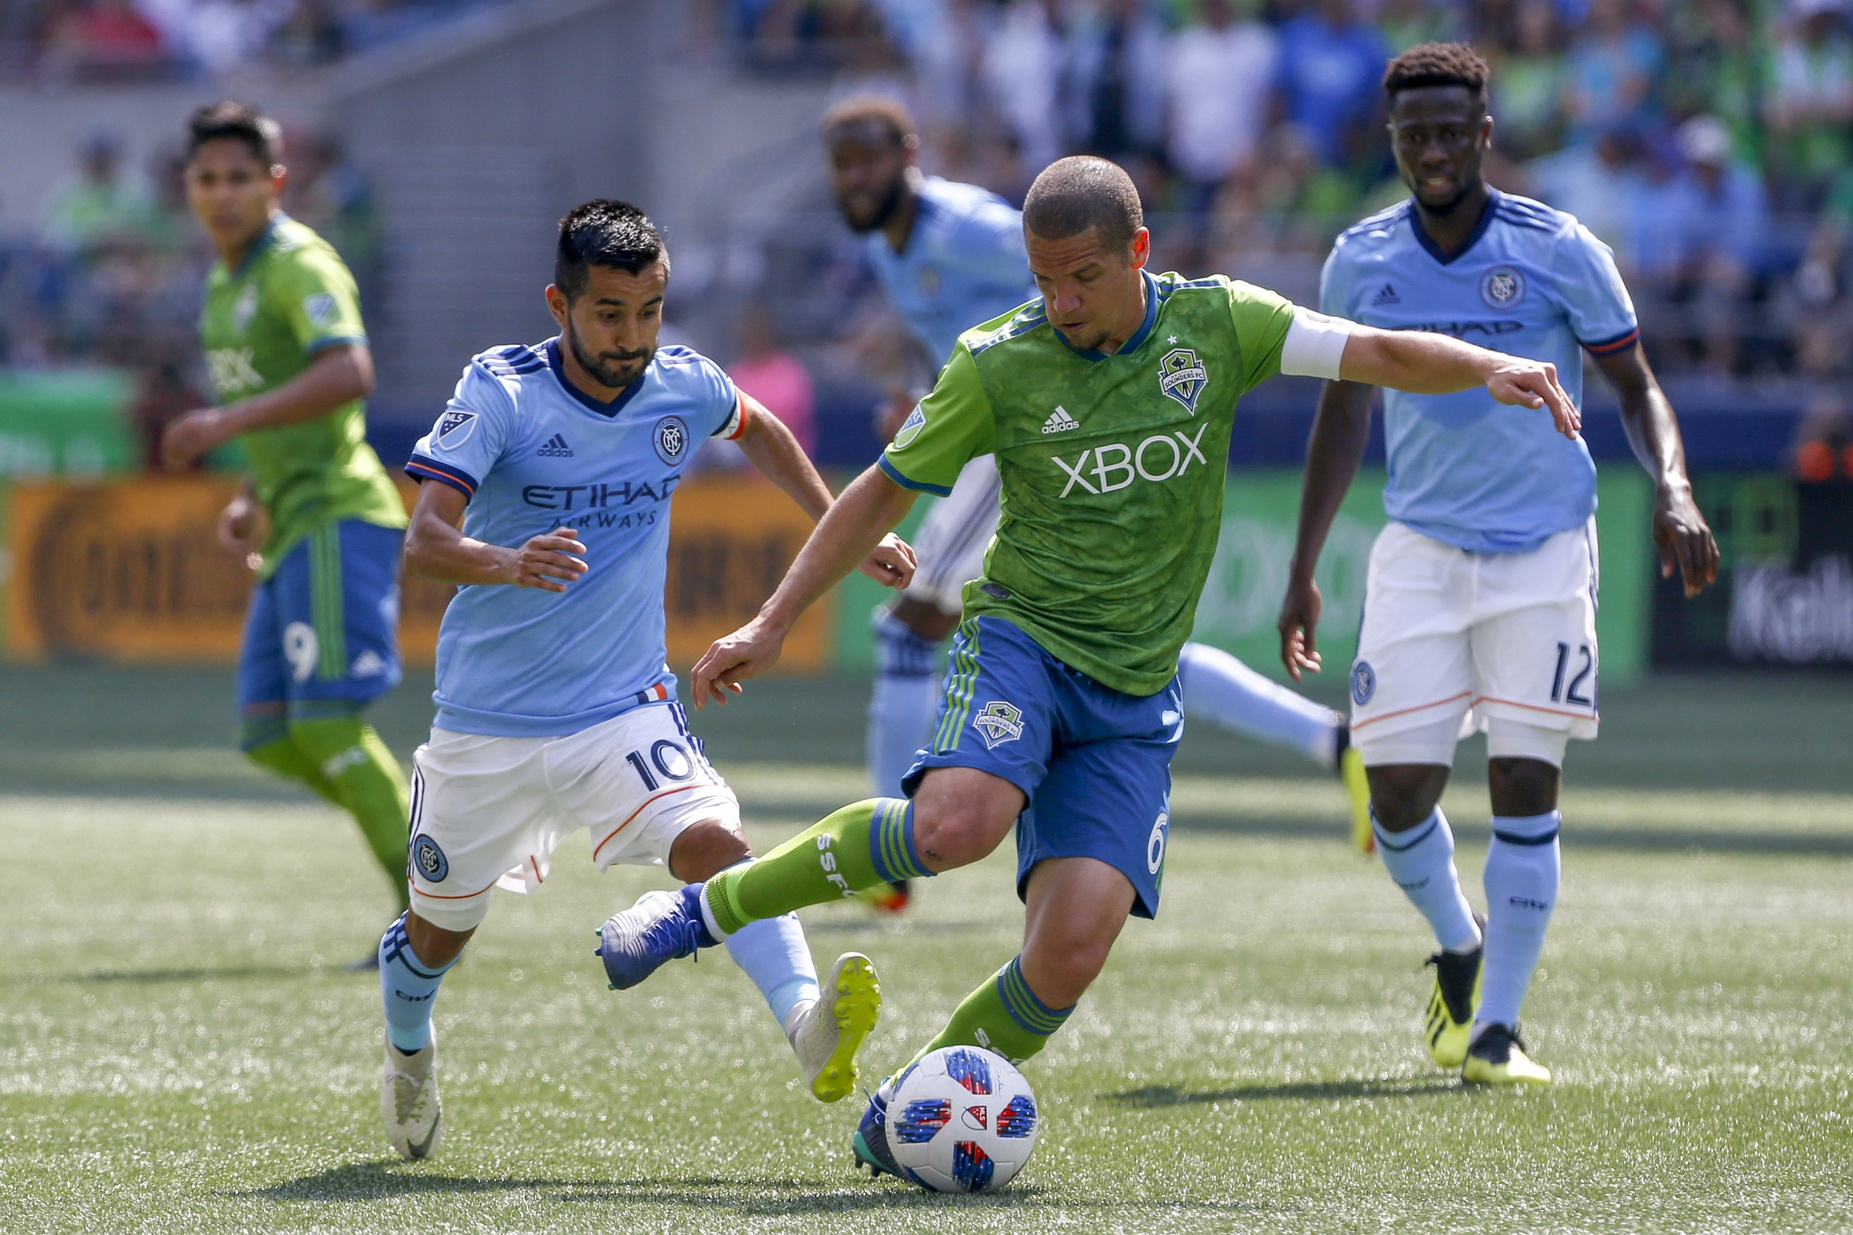 Jul 29, 2018; Seattle, WA, USA; Seattle Sounders FC midfielder Osvaldo Alonso (6) dribbles the ball against New York City FC midfielder Maximiliano Moralez (10) during the second half at CenturyLink Field. Mandatory Credit: Jennifer Buchanan-USA TODAY Sports